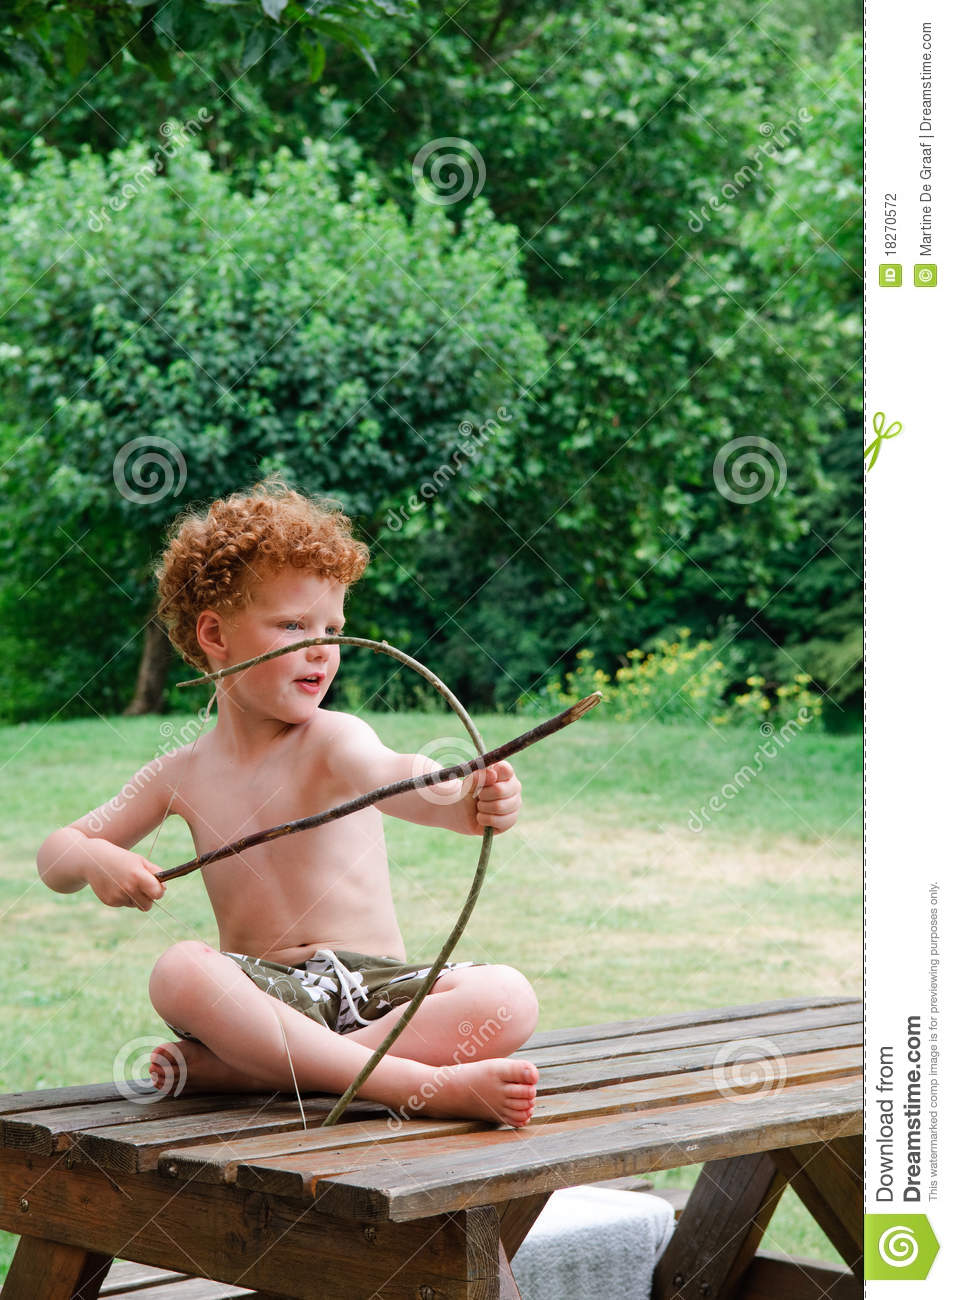 Boy With Bow And Arrow Stock Photo Image Of Curled